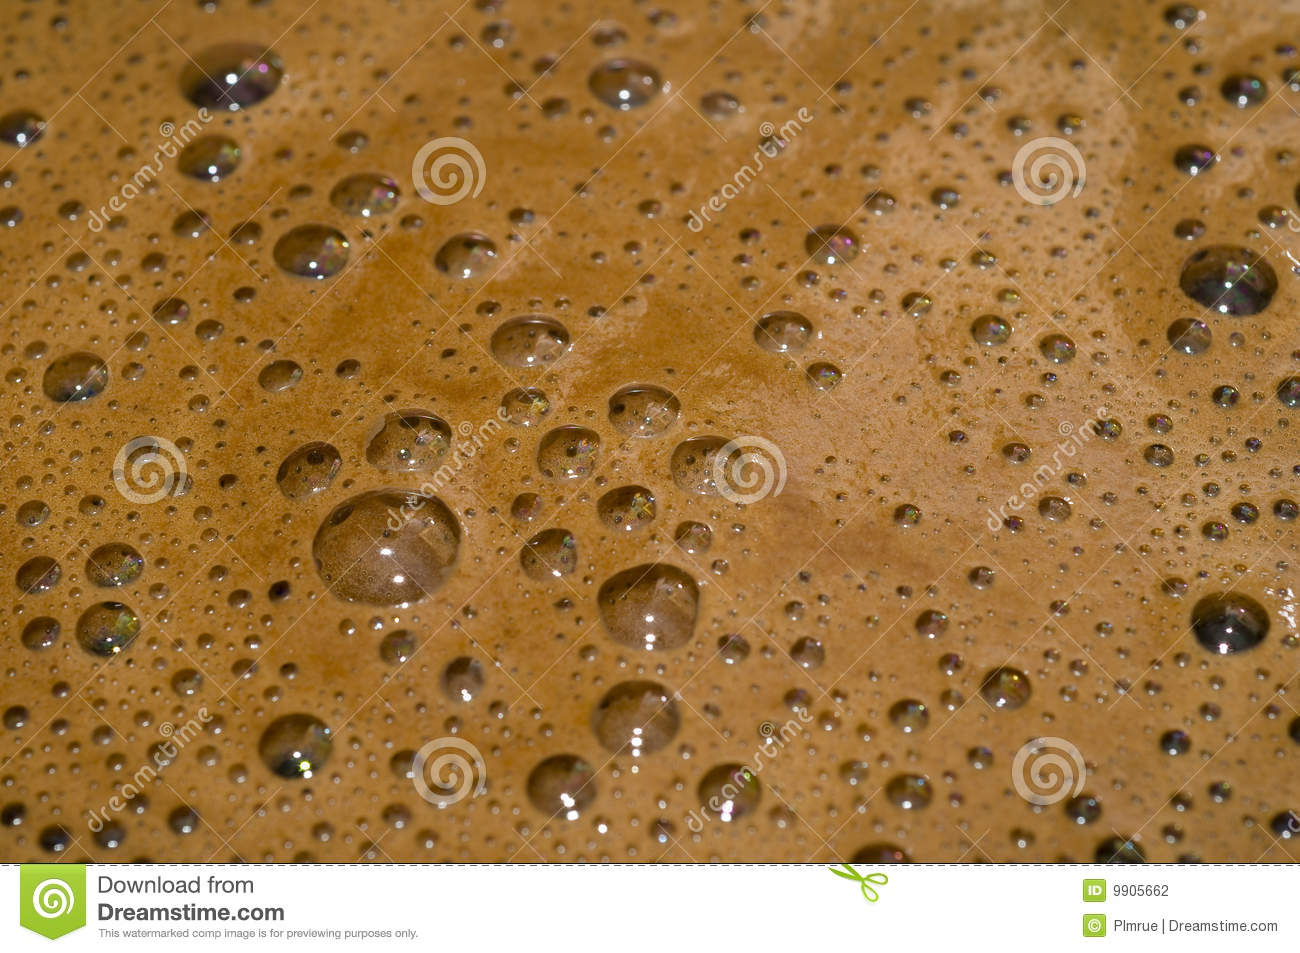 royaltyfree stock photo download coffee cream